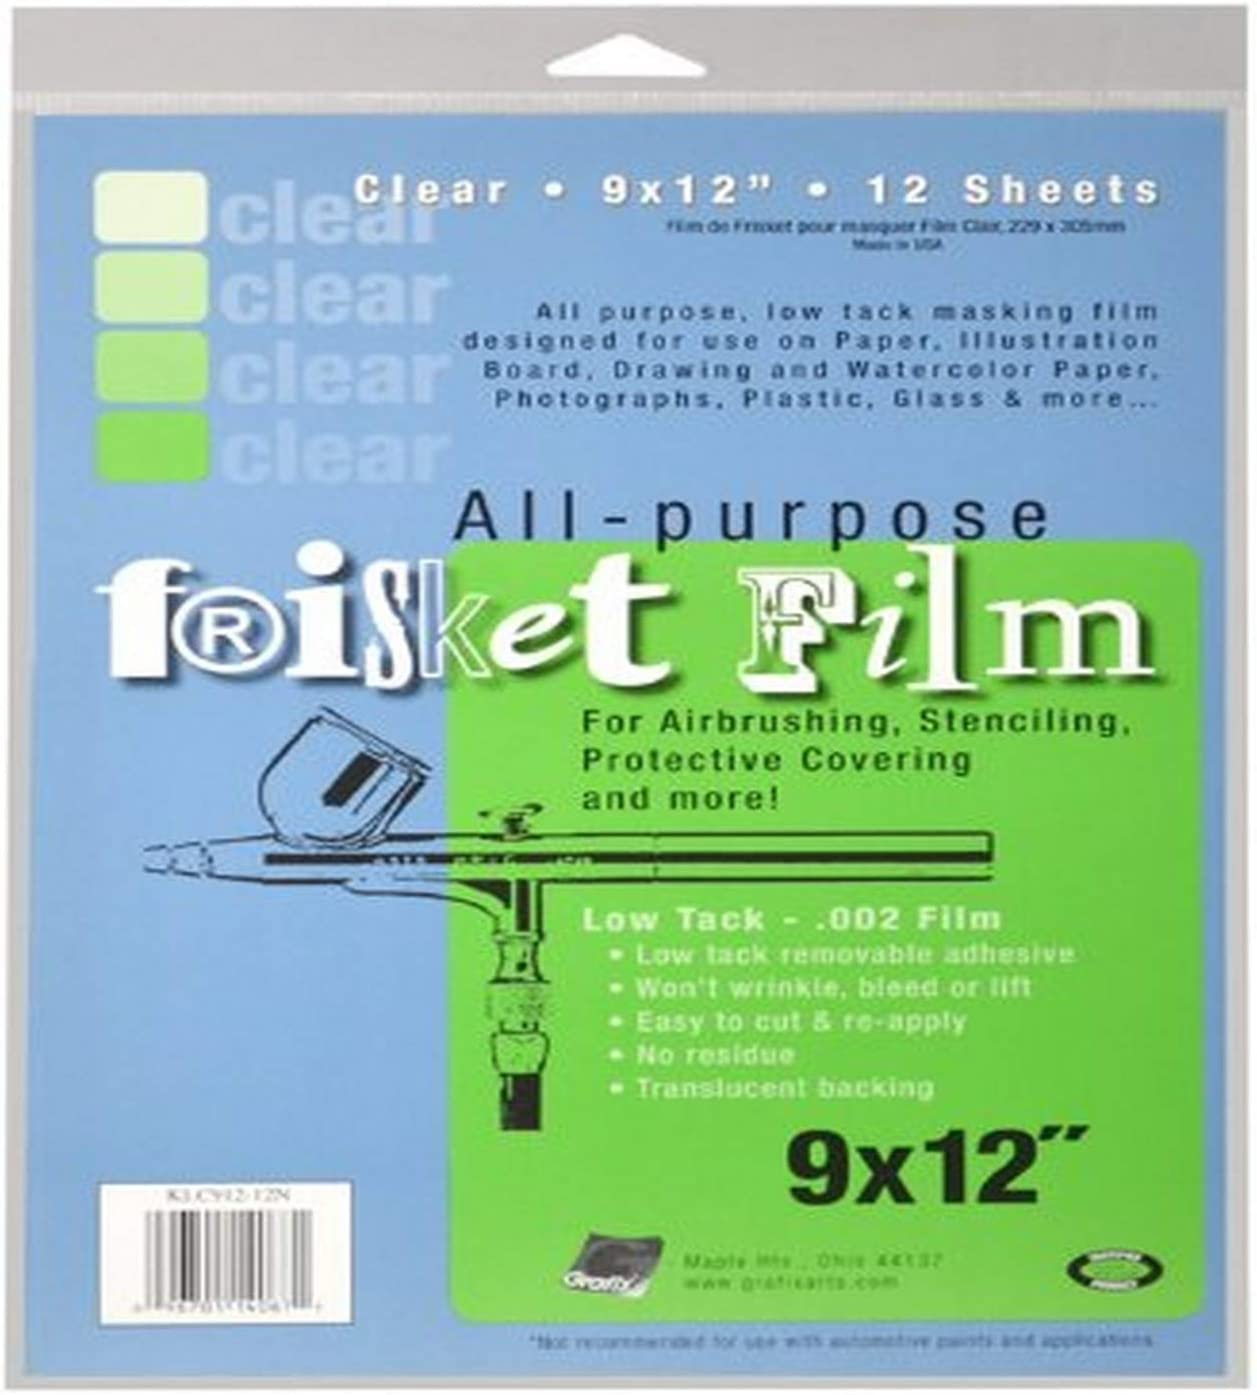 Pack of 100 Grafix Extra Tack Frisket Film Sheets 9-Inch-by-12-Inch